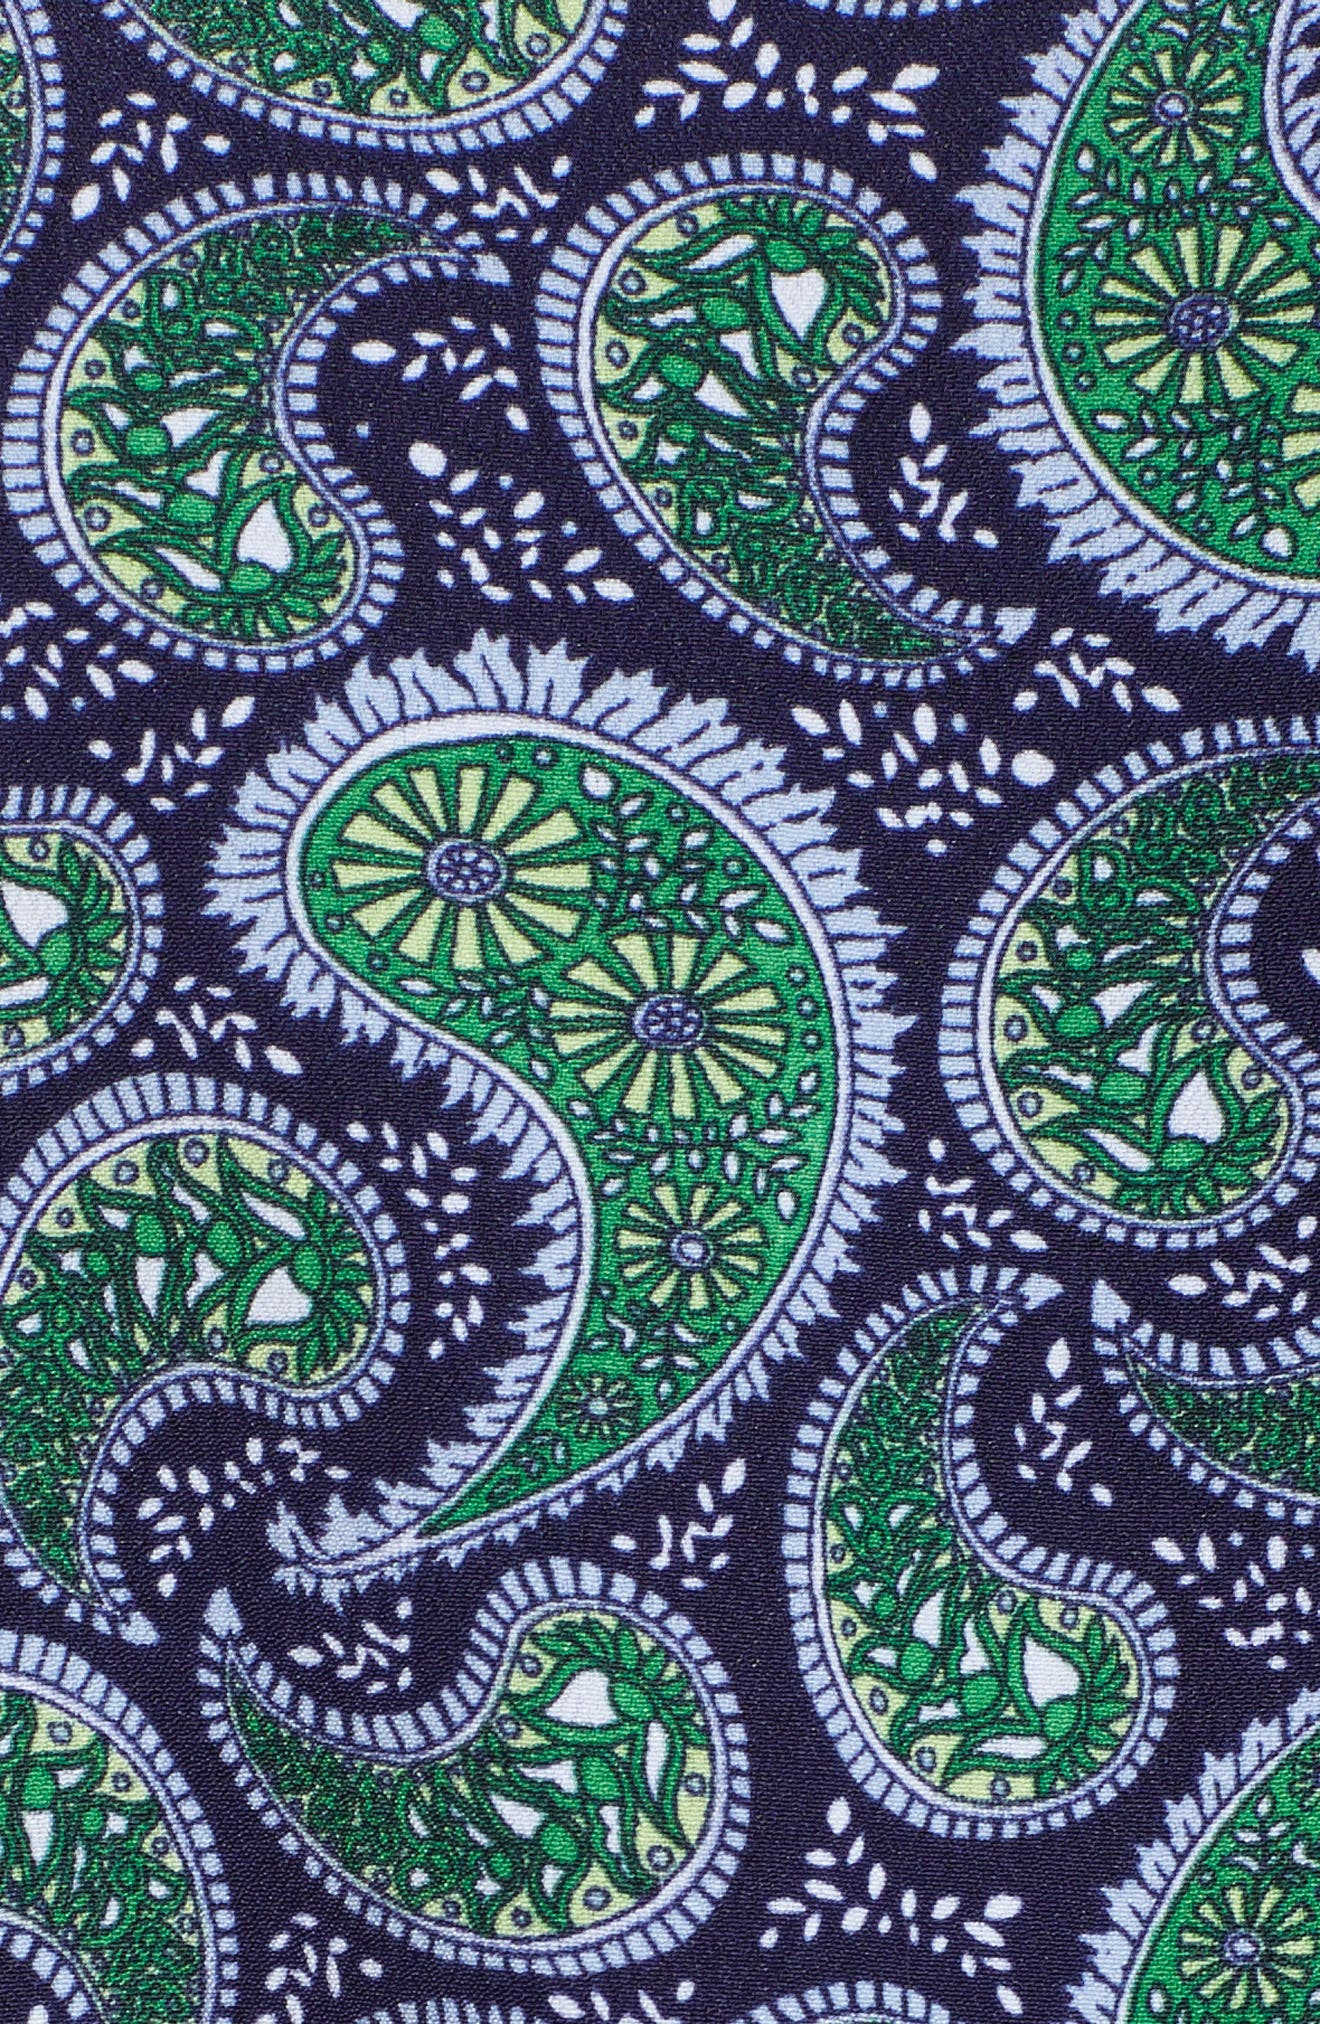 Kimono Sleeve Paisley Top,                             Alternate thumbnail 6, color,                             True Navy/Green Apple Mu